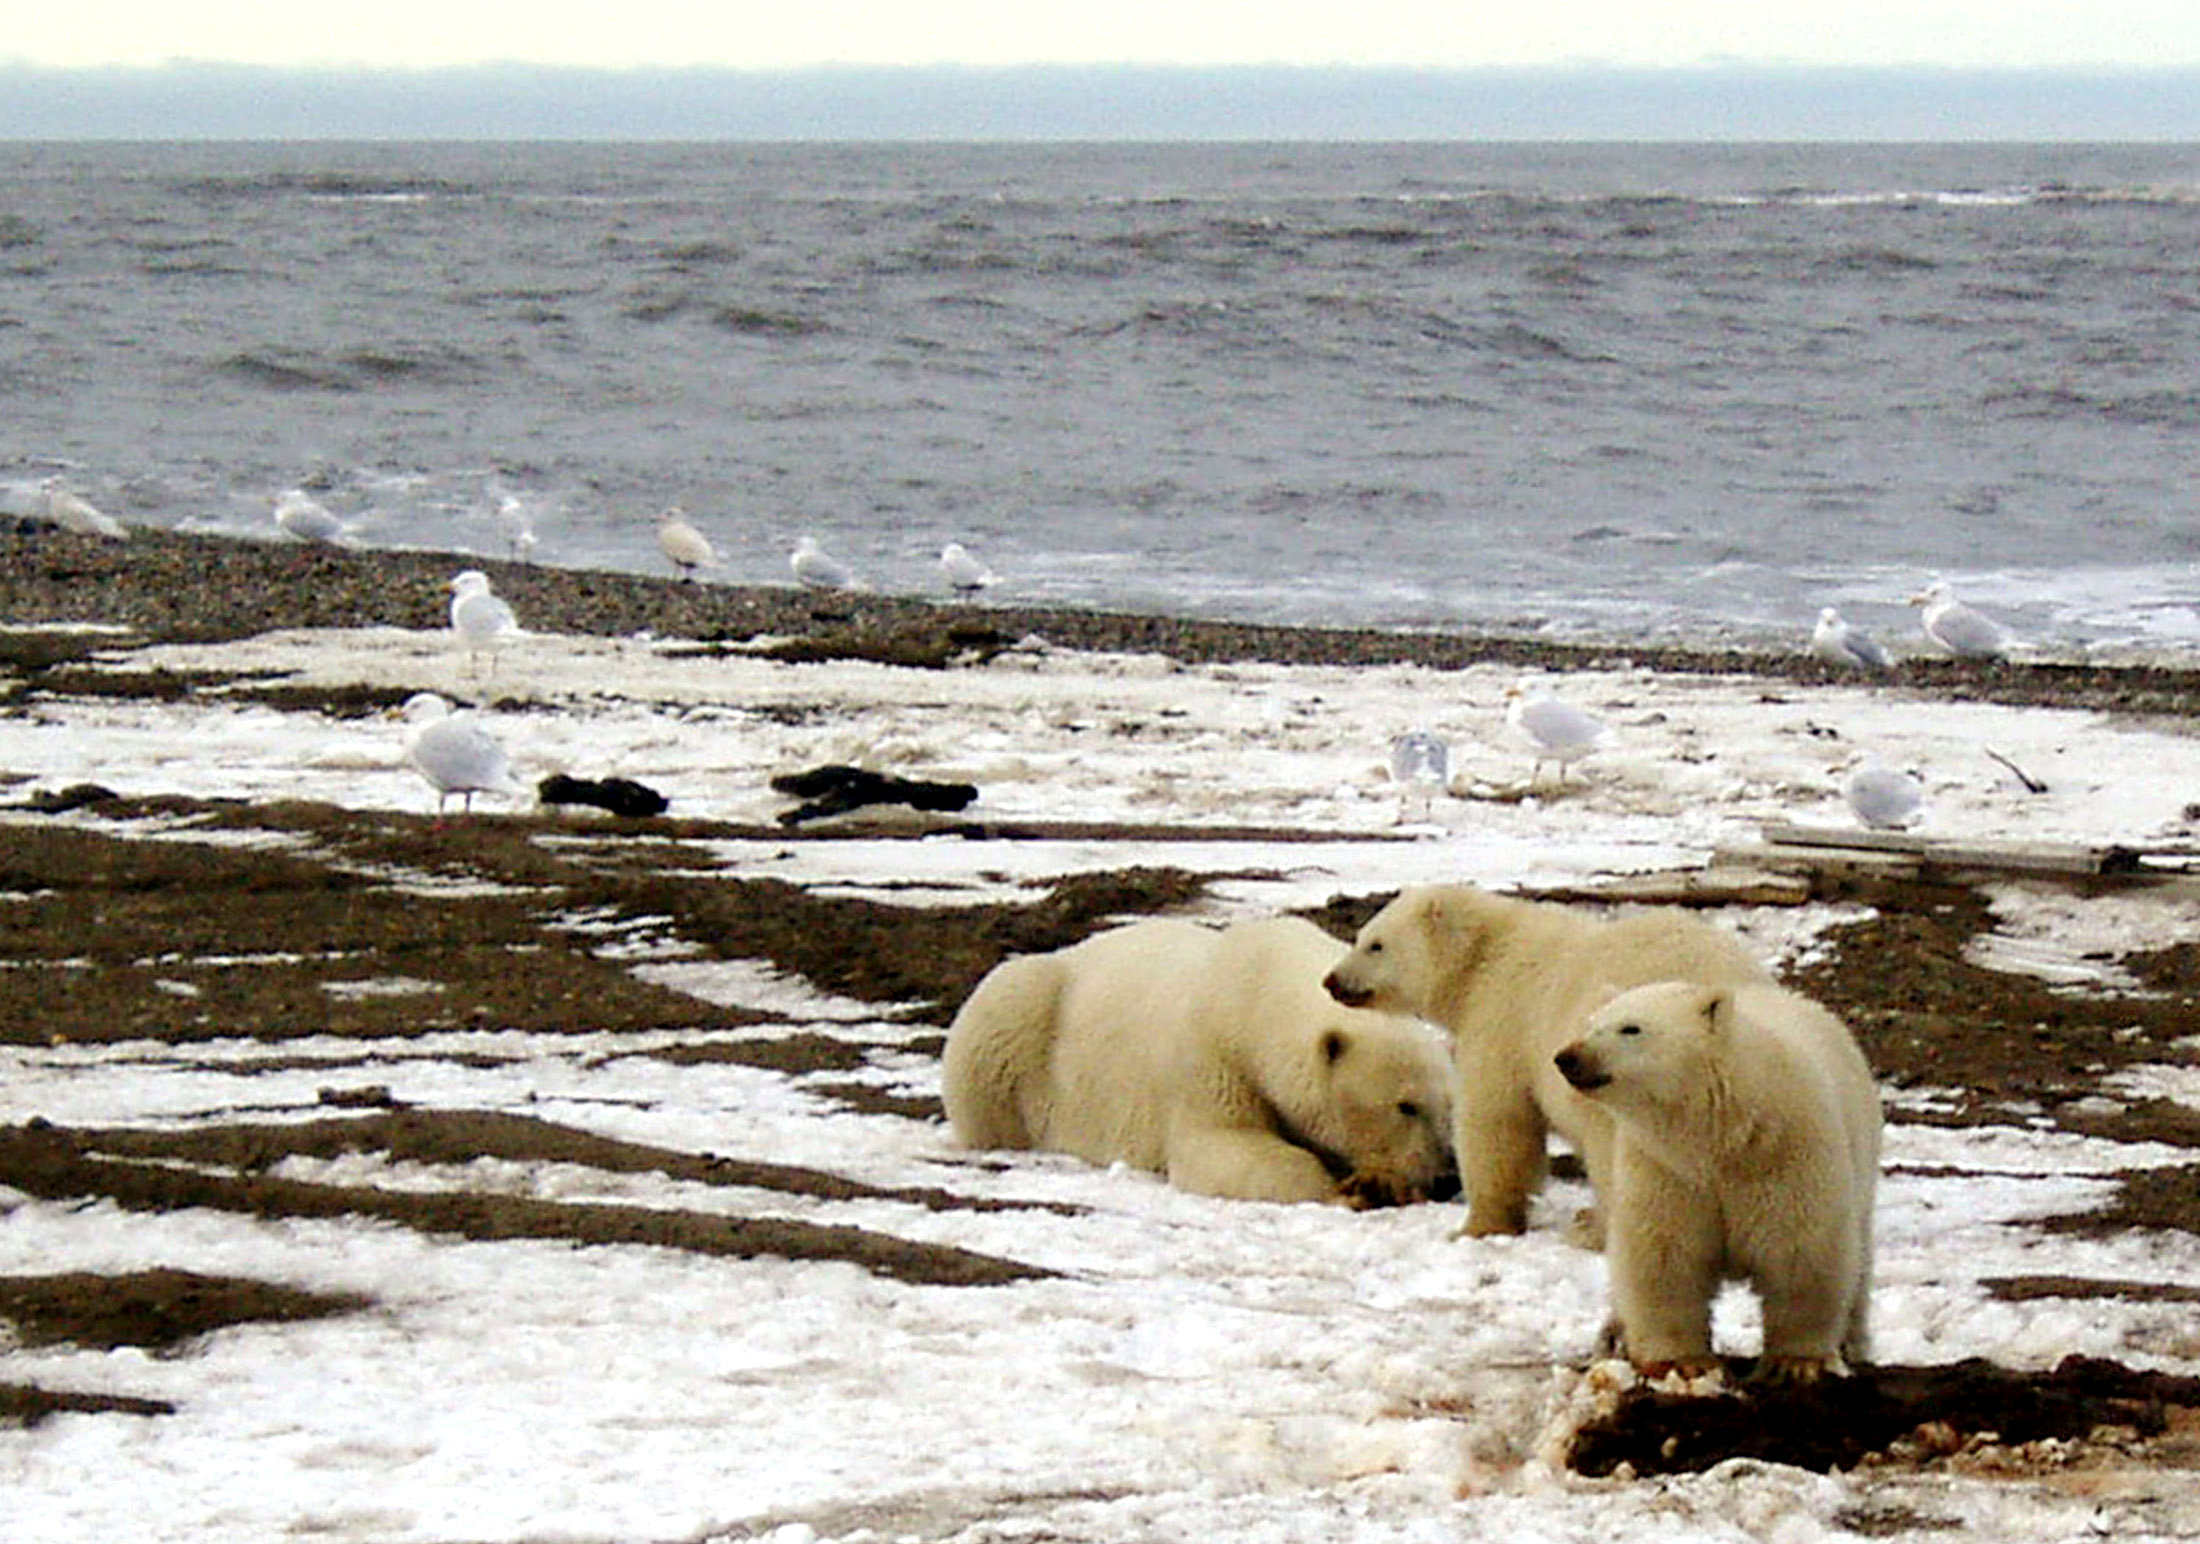 With US government shutdown over, a path is cleared for hearings on Arctic oil development